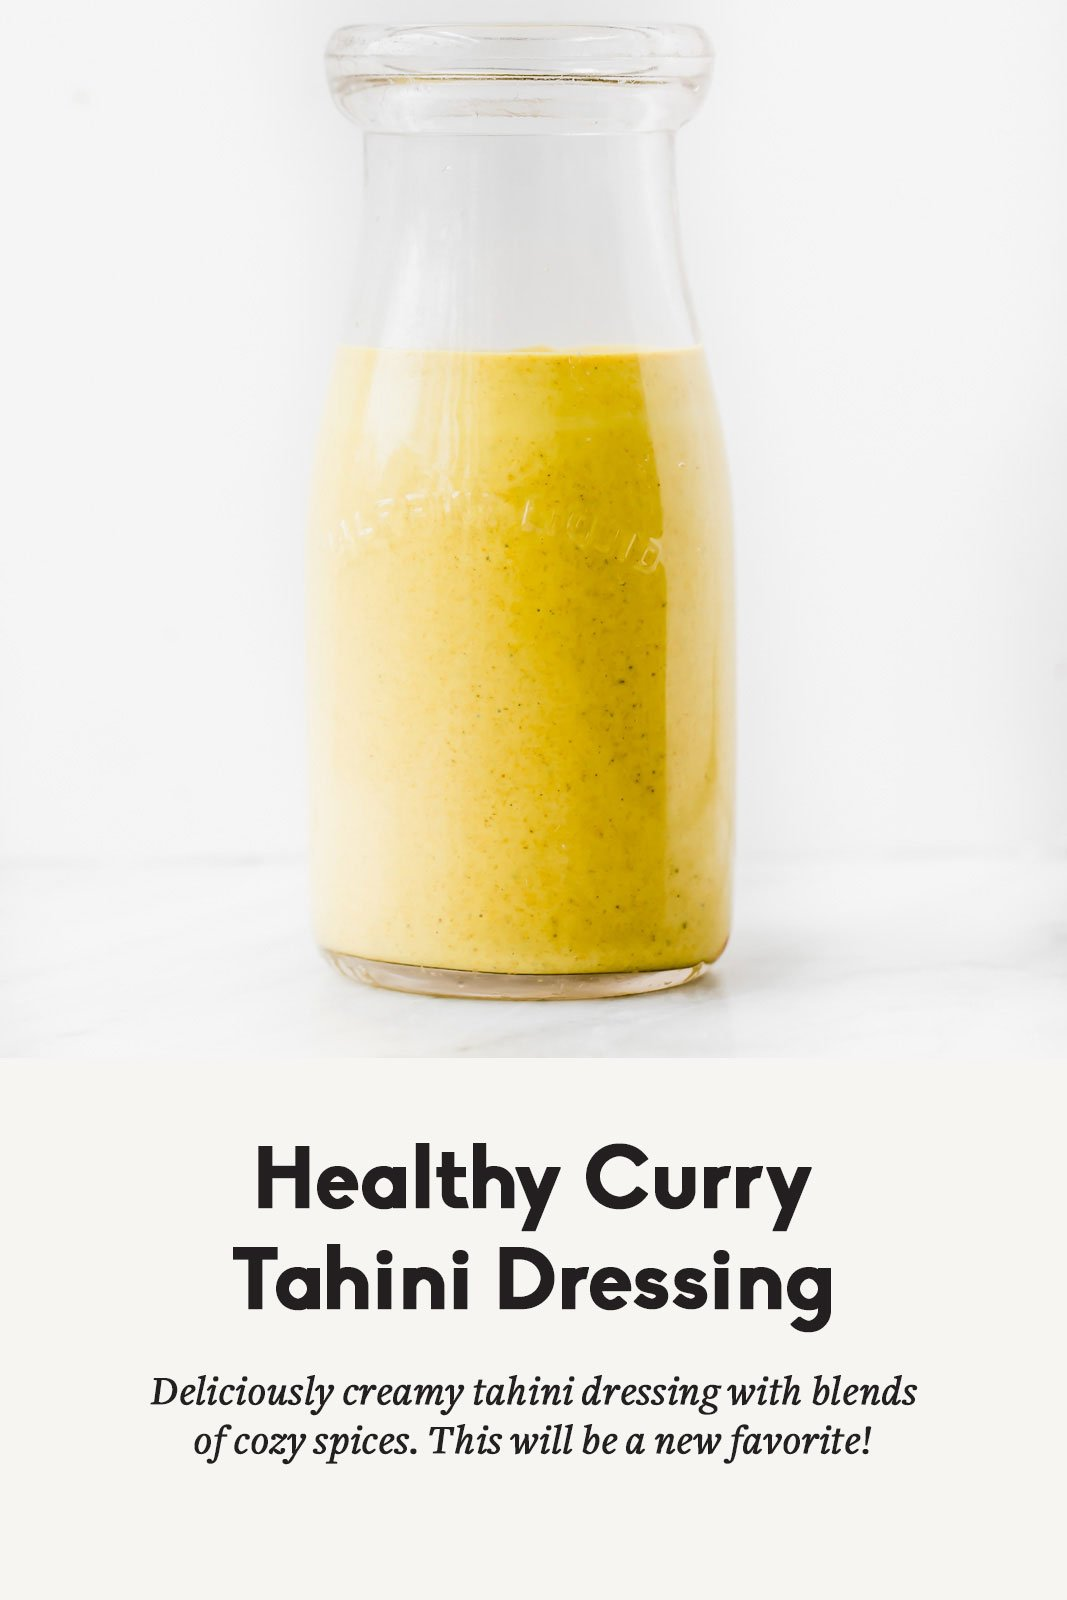 bottle of healthy curry tahini dressing